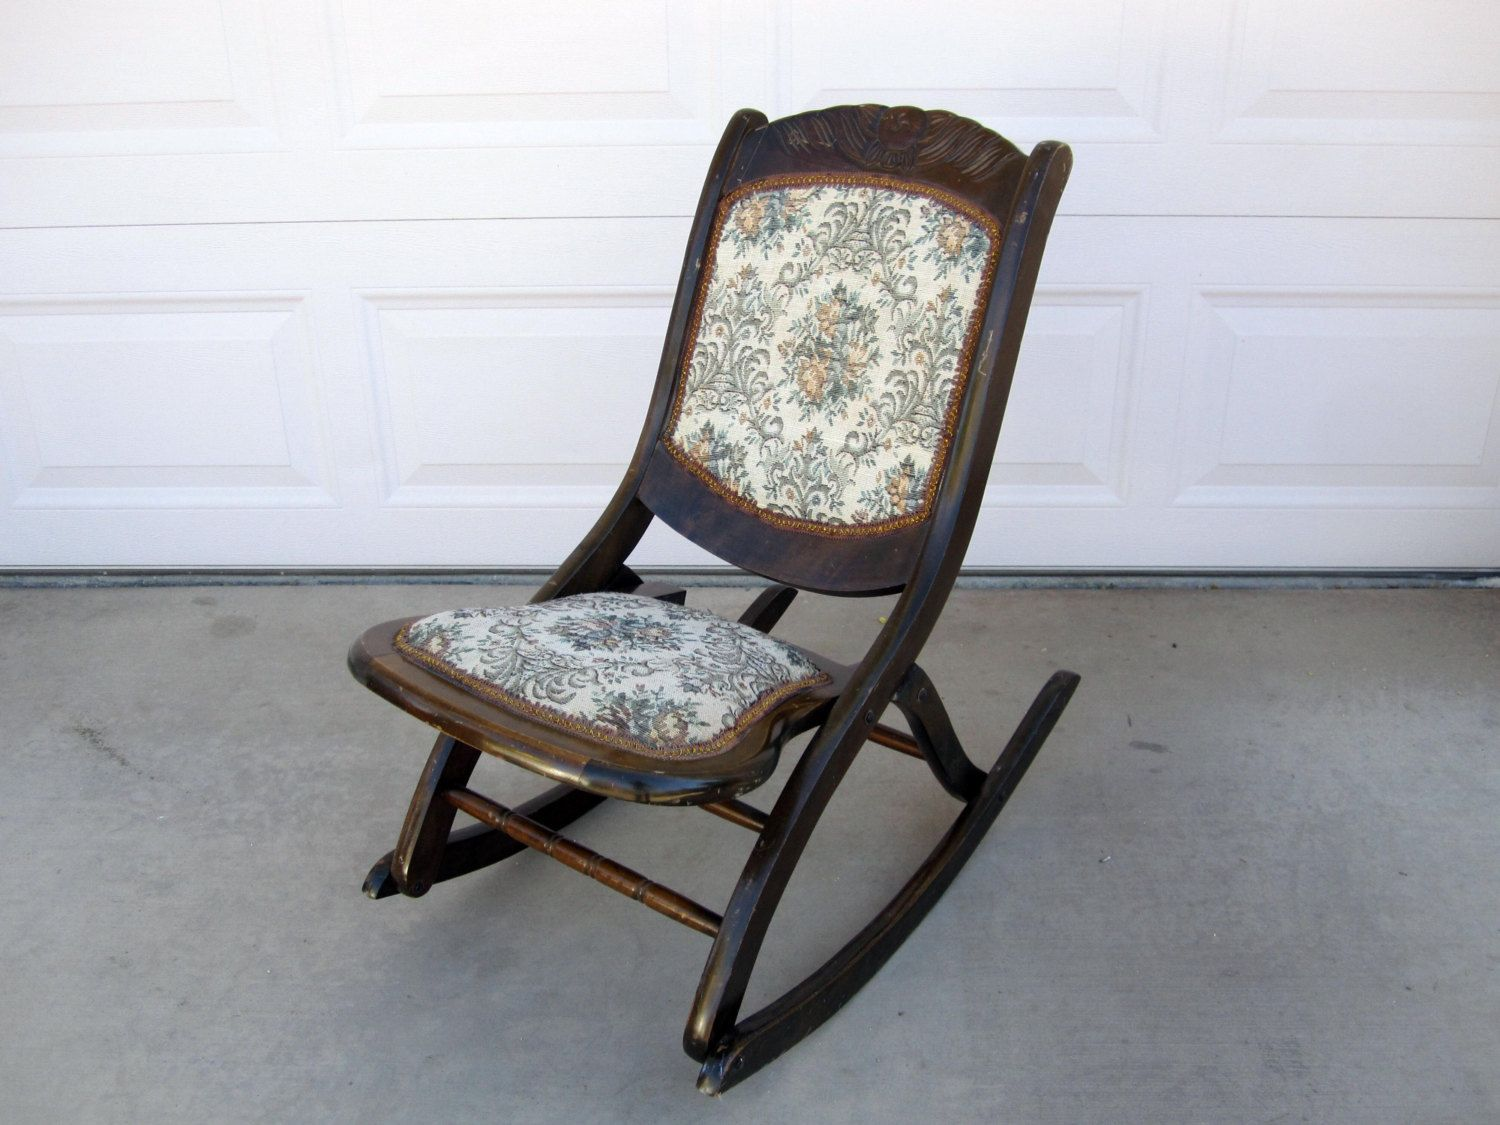 Alfa img Showing Antique Folding Rocking Chair Value – Folding Rocking Lawn Chairs